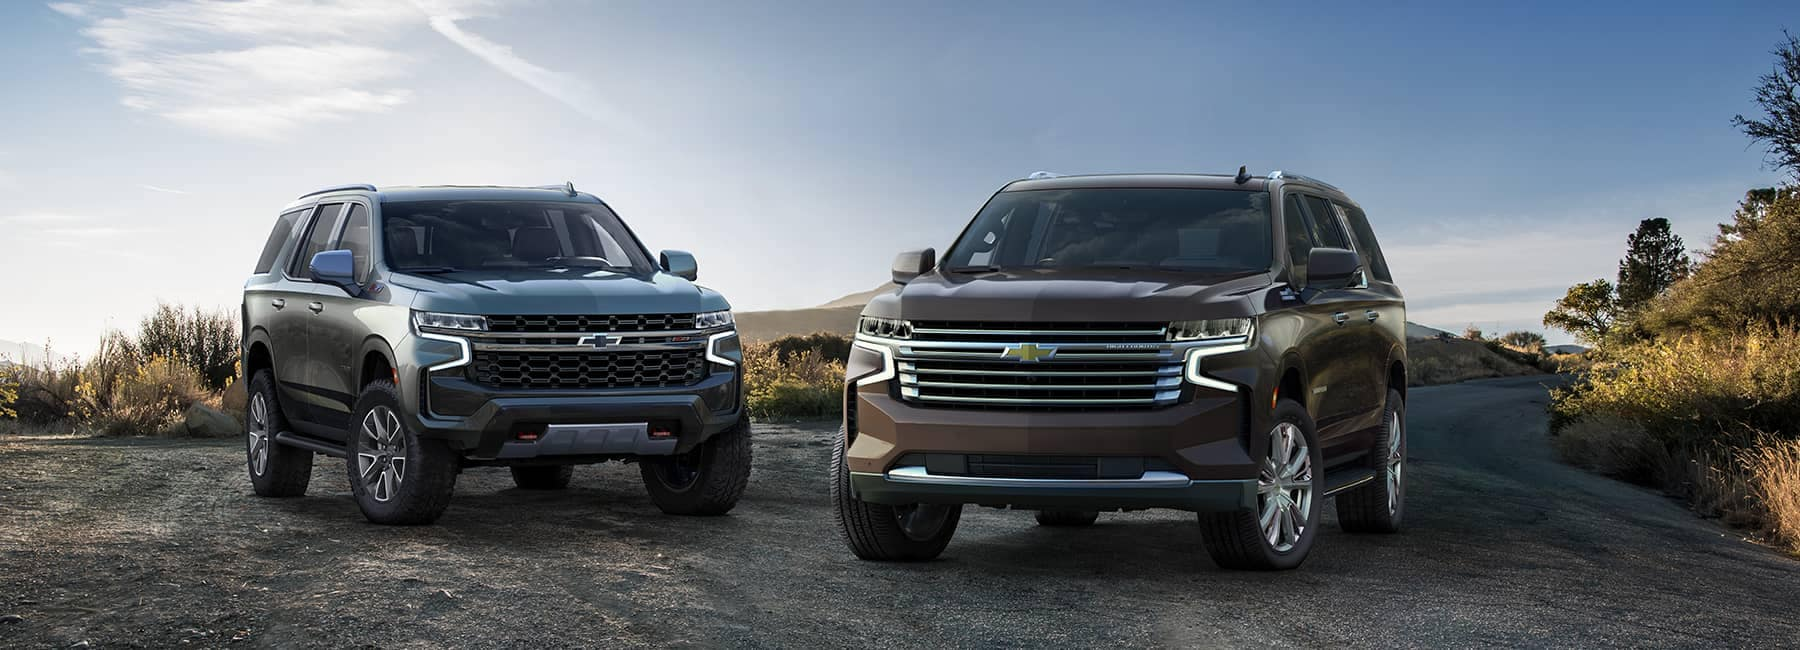 2021 Chevrolet Suburbans parked side-by-side_mobile